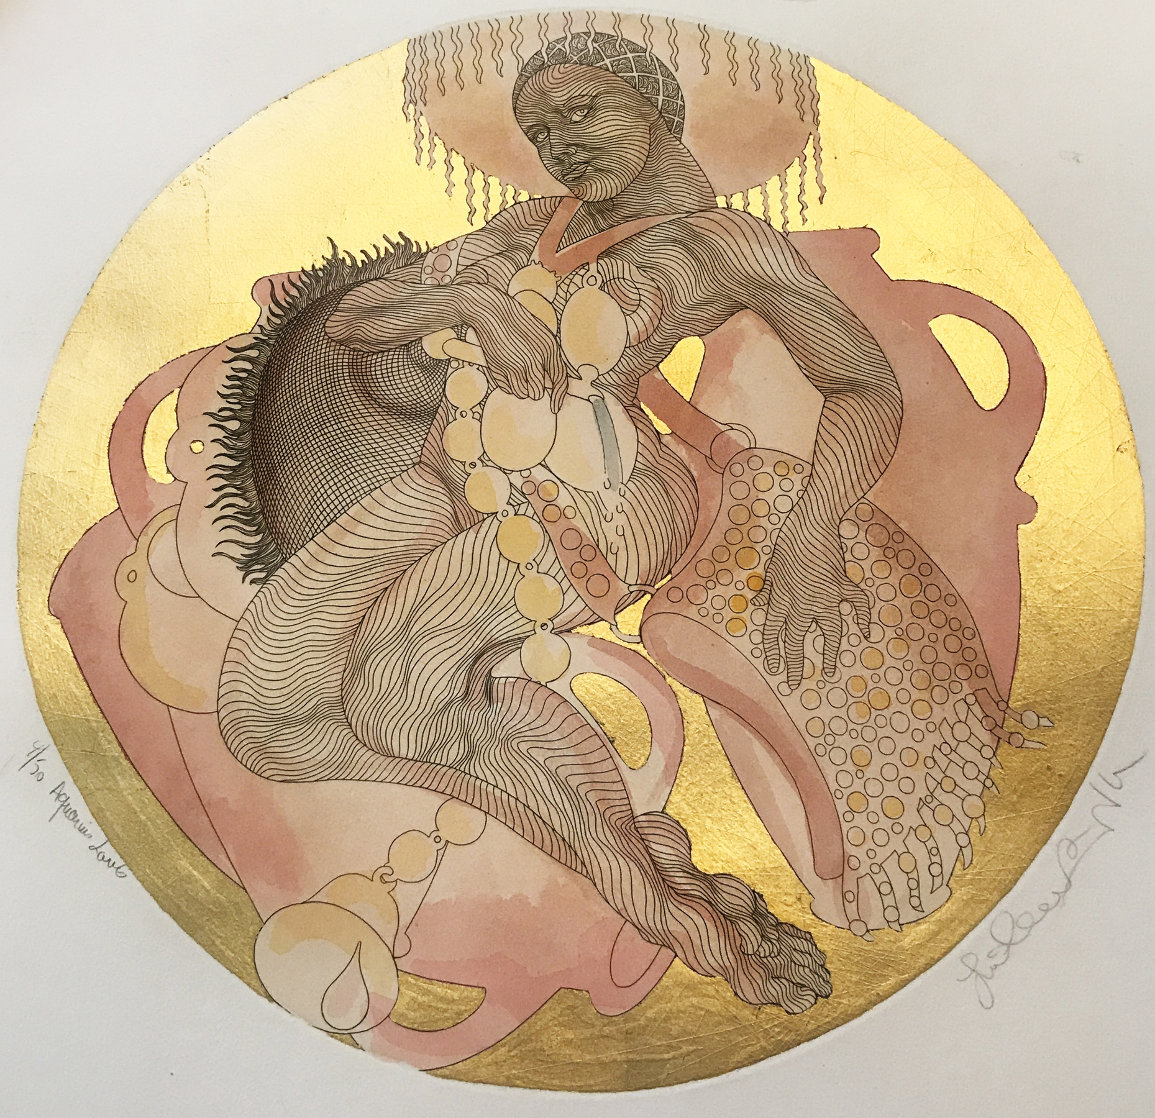 Aquarius Lavis 1995 Limited Edition Print by Guillaume Azoulay